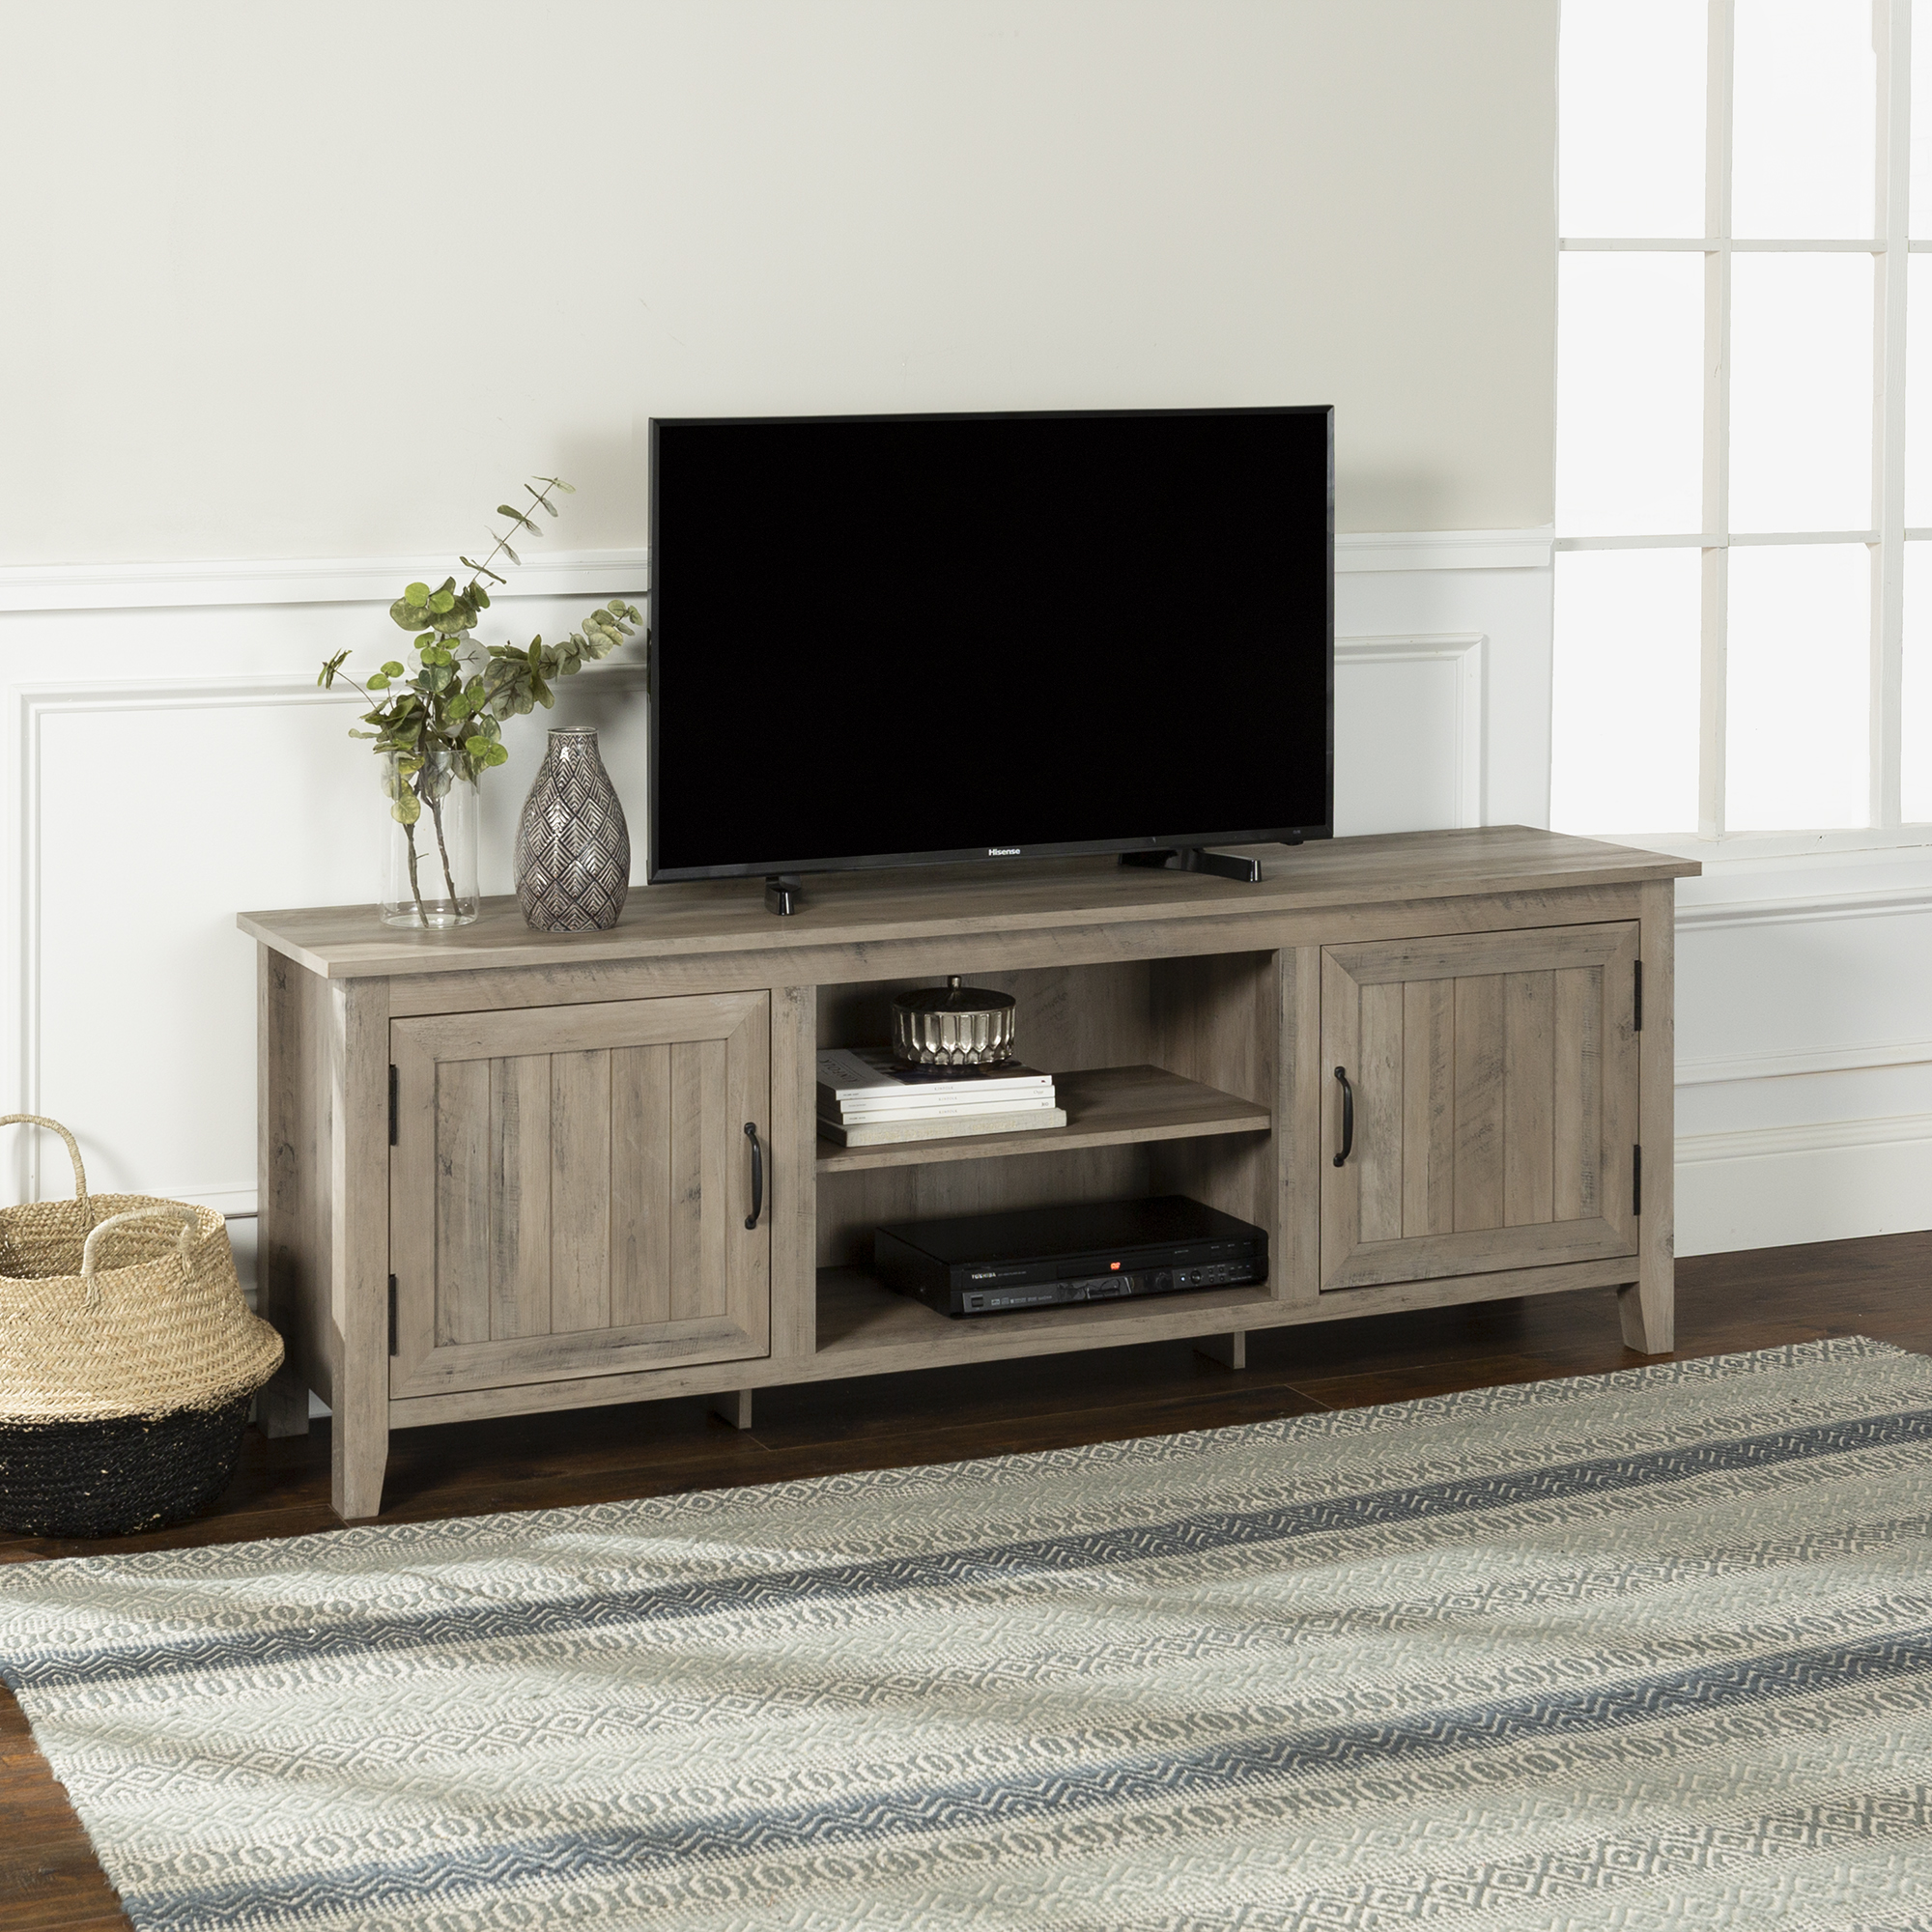 Manor Park Modern Farmhouse Tv Stand For Tvs Up To 80 White Oak Walmart Com Walmart Com